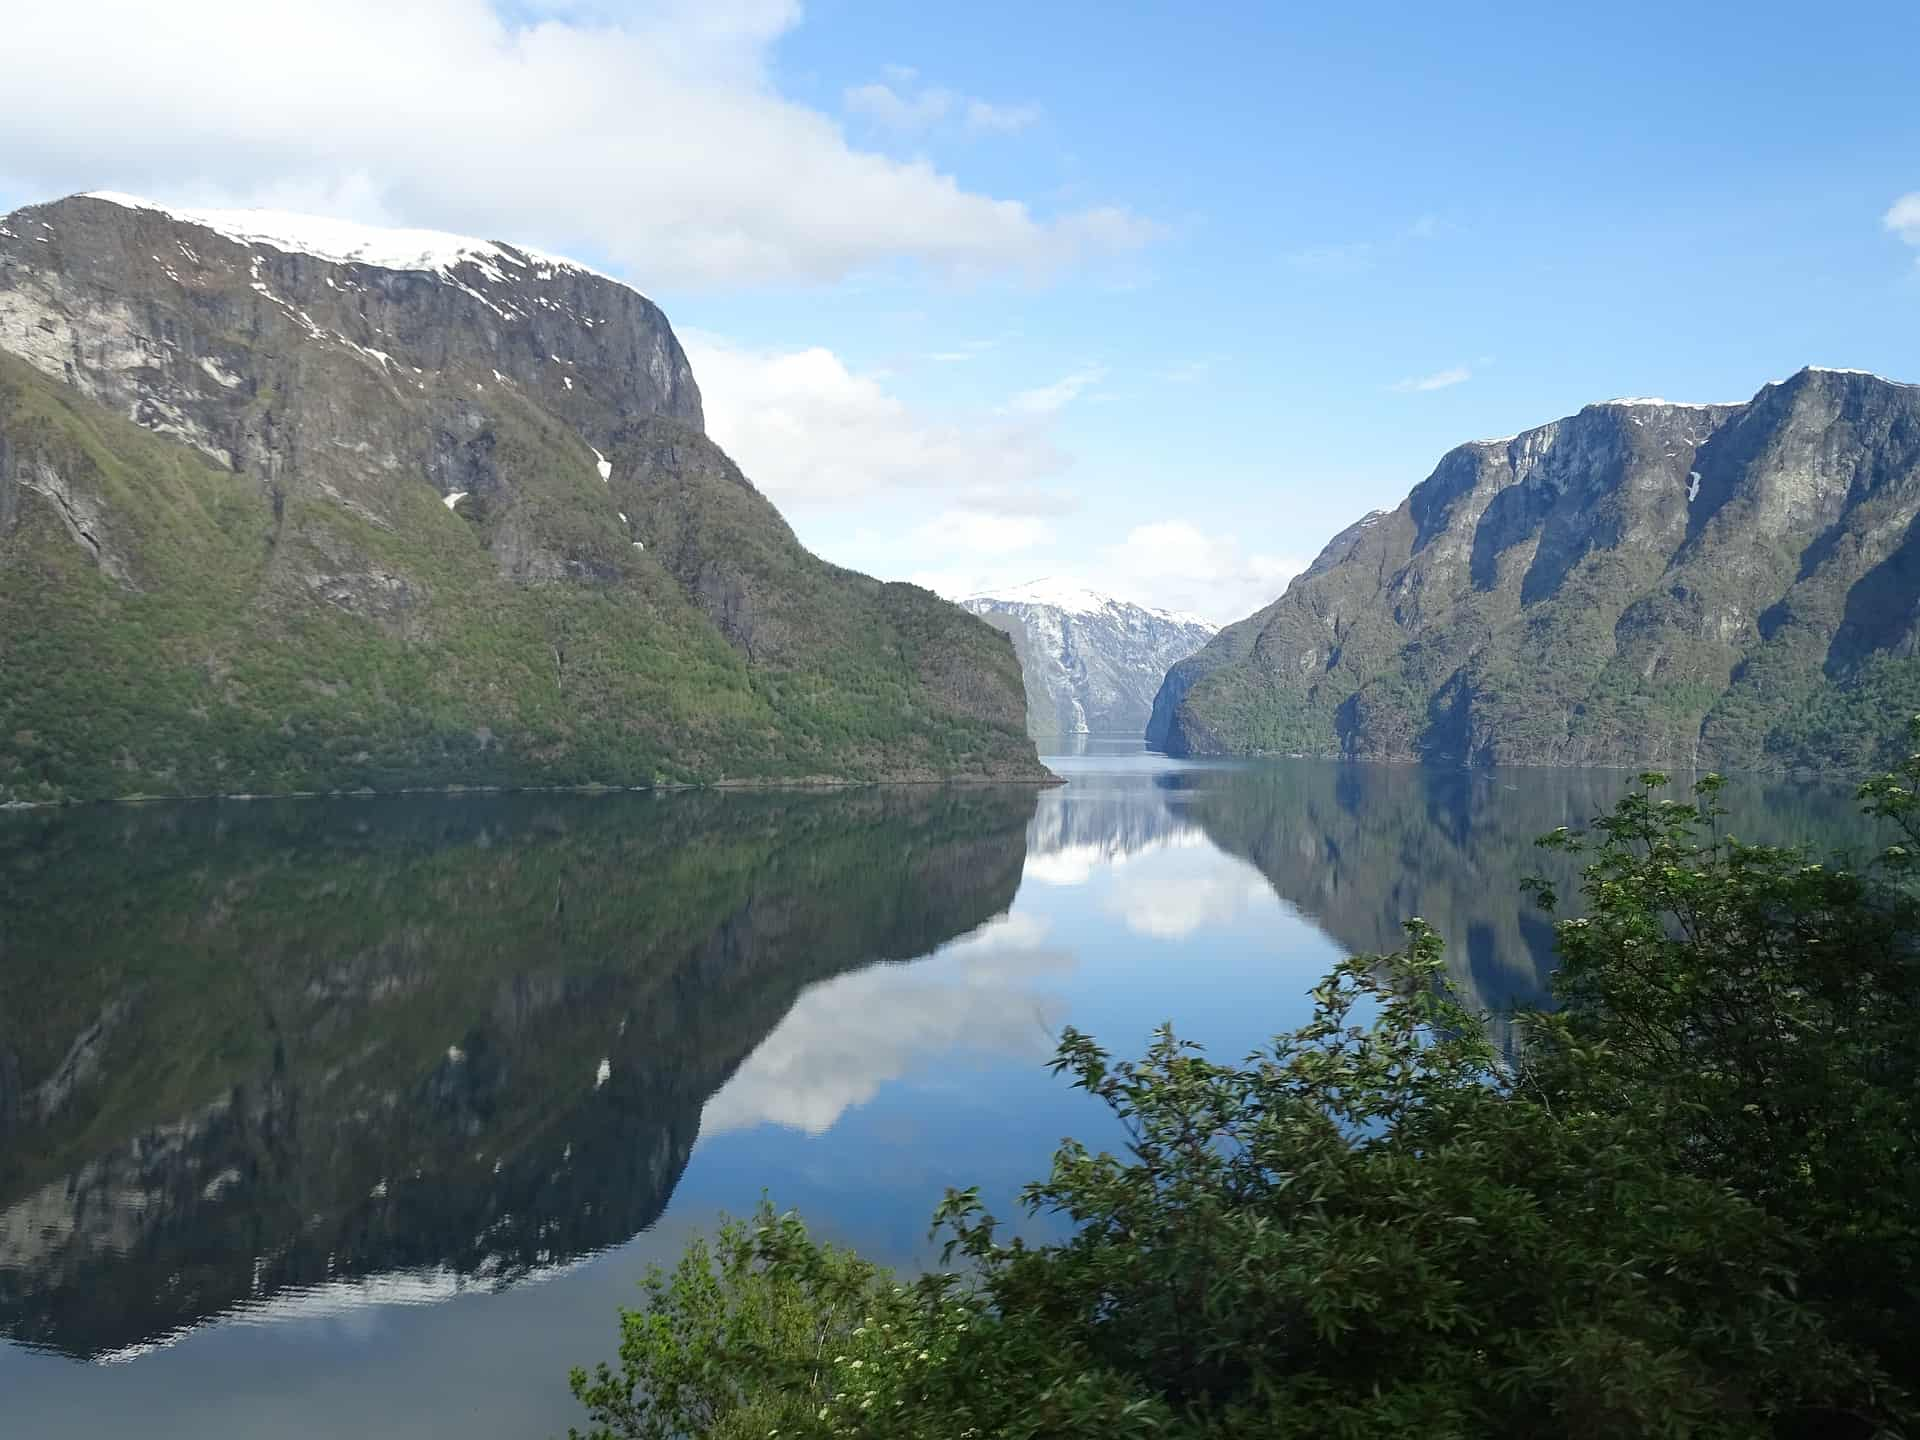 The Sognefjord is the longest fjord system in Norway. It sails 206 km inland, from the islands in the west to Skjolden, at the foot of the Jotunheims, in the east.